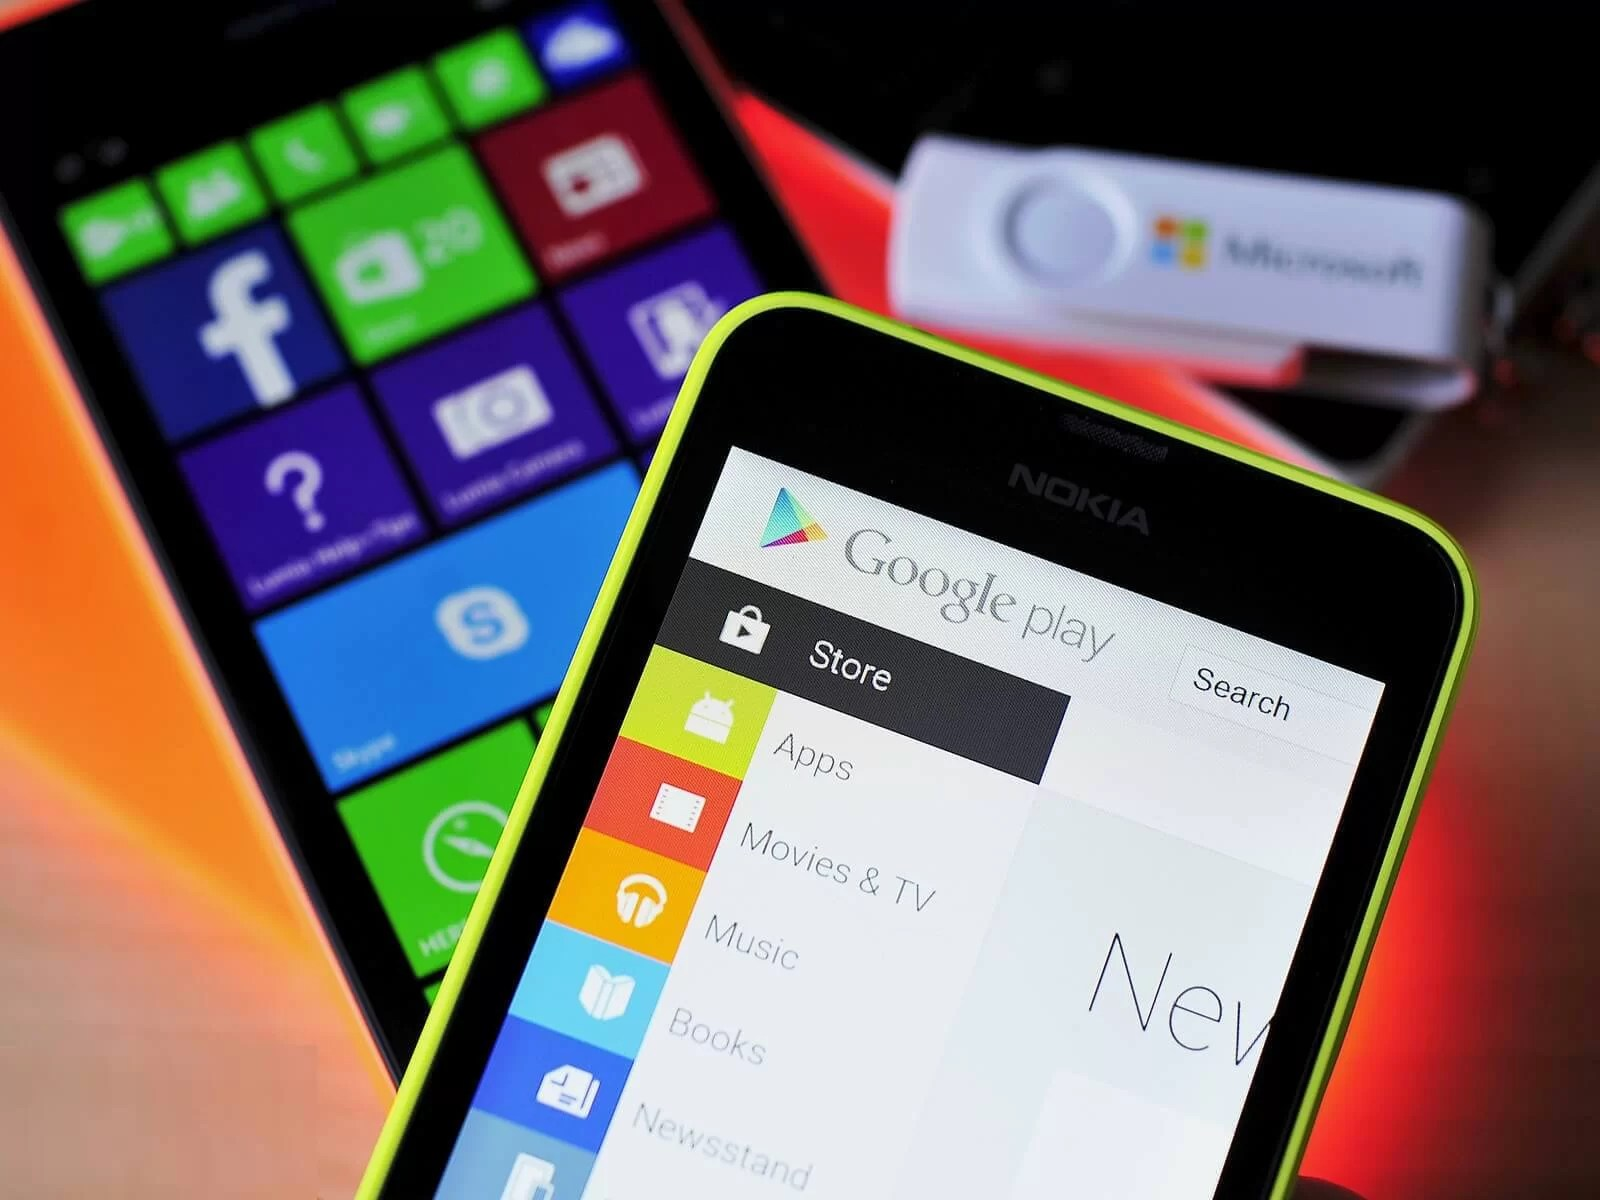 Google play store app free download for windows phone 8 1 | Peatix